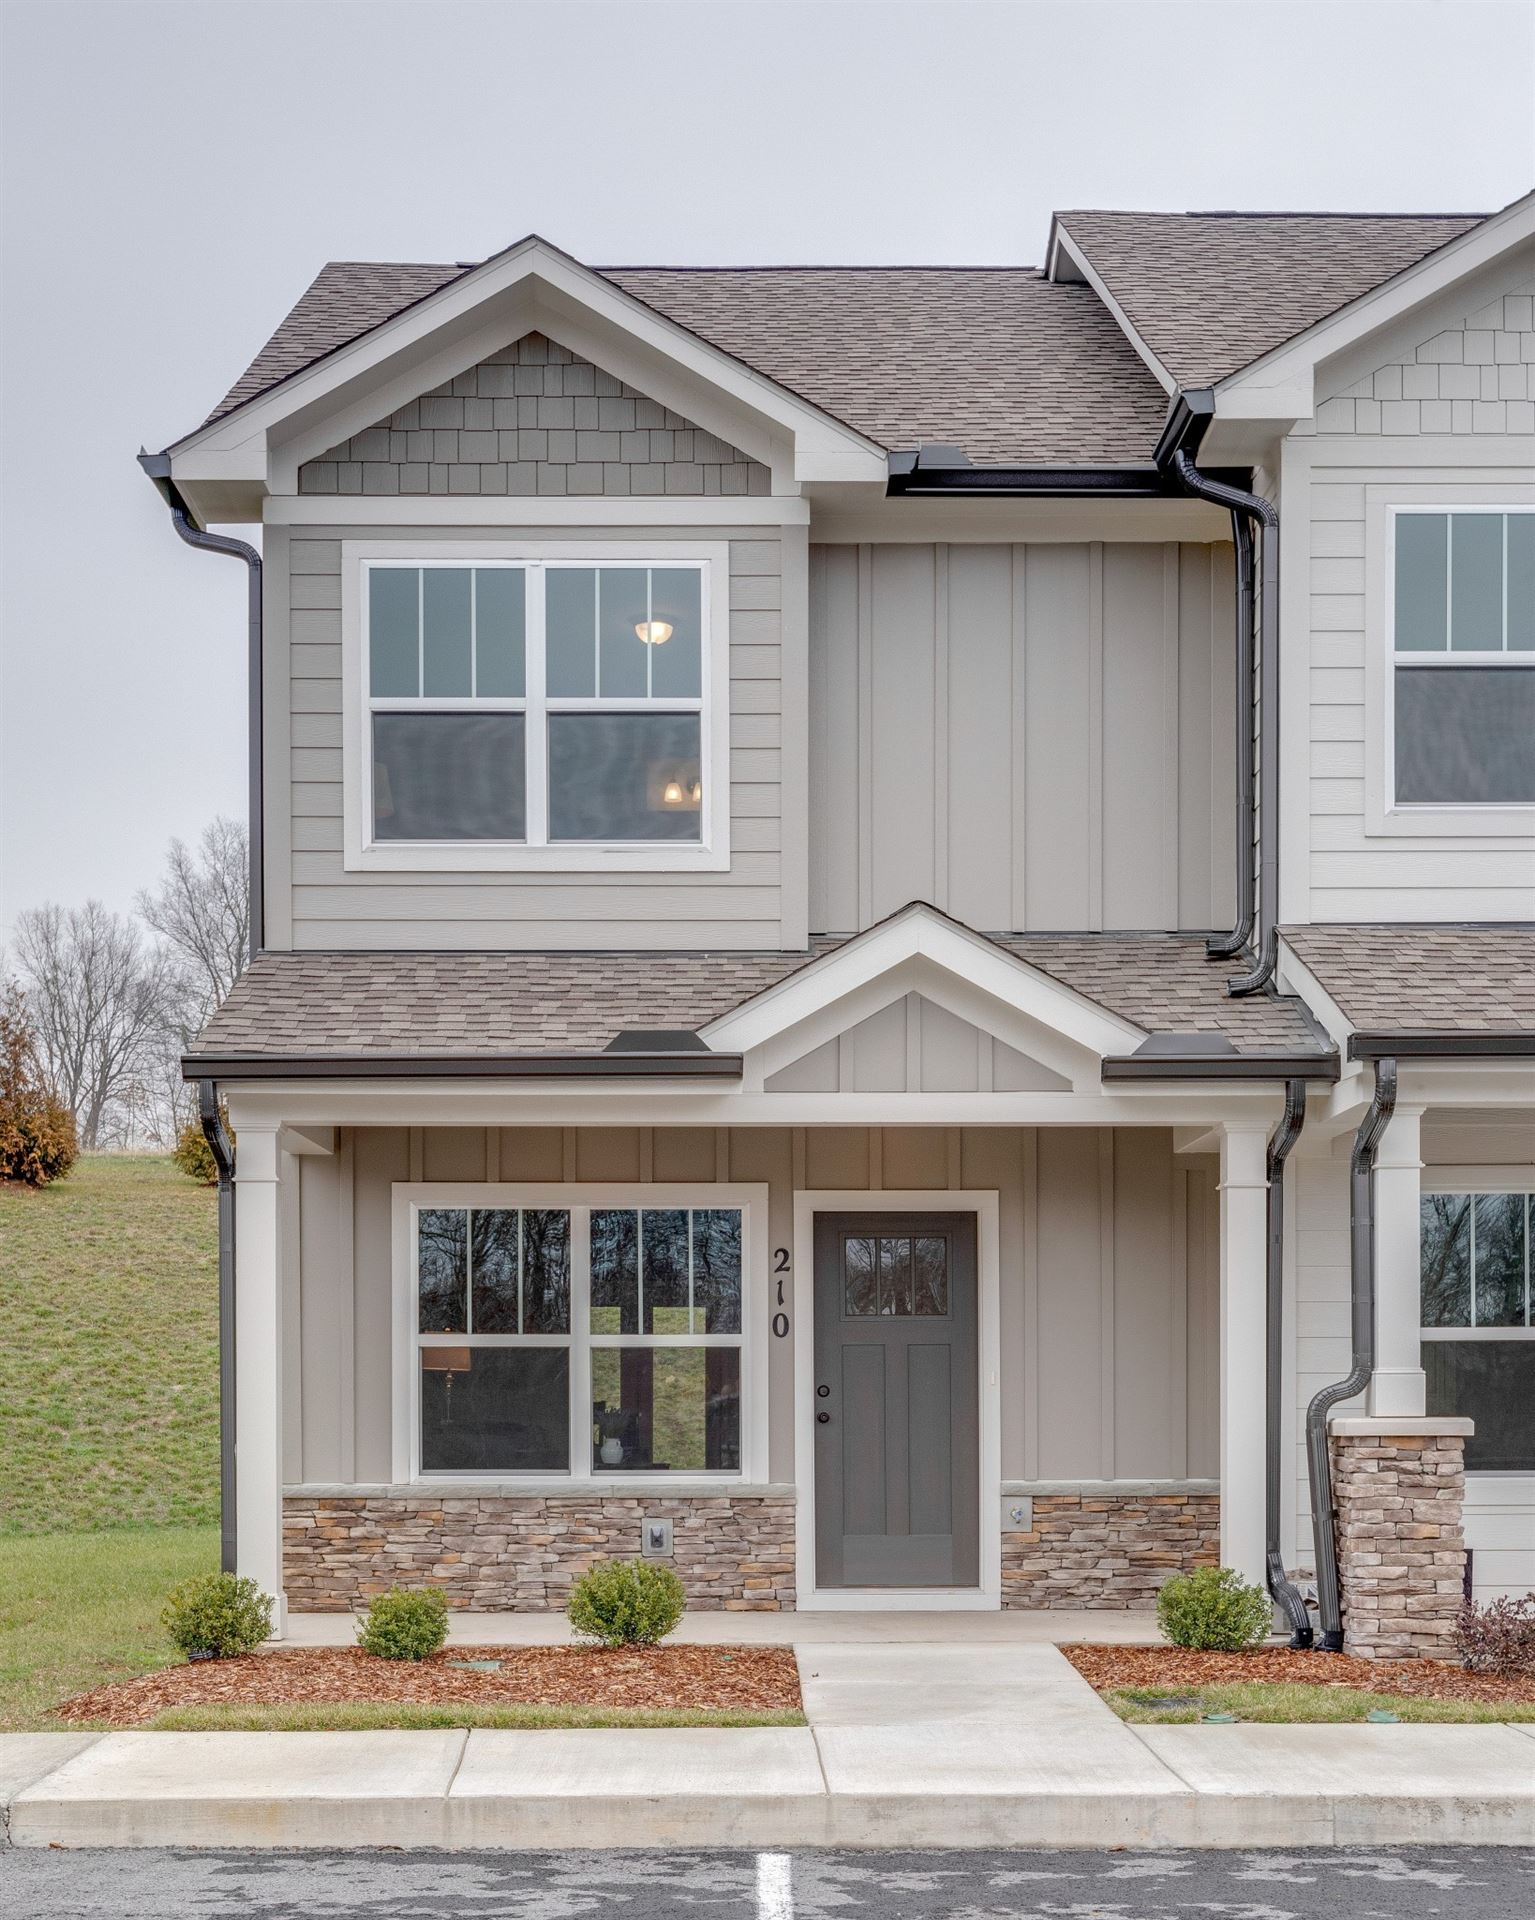 505 Bell Forge Ct, White Bluff, TN 37187 - MLS#: 2164836